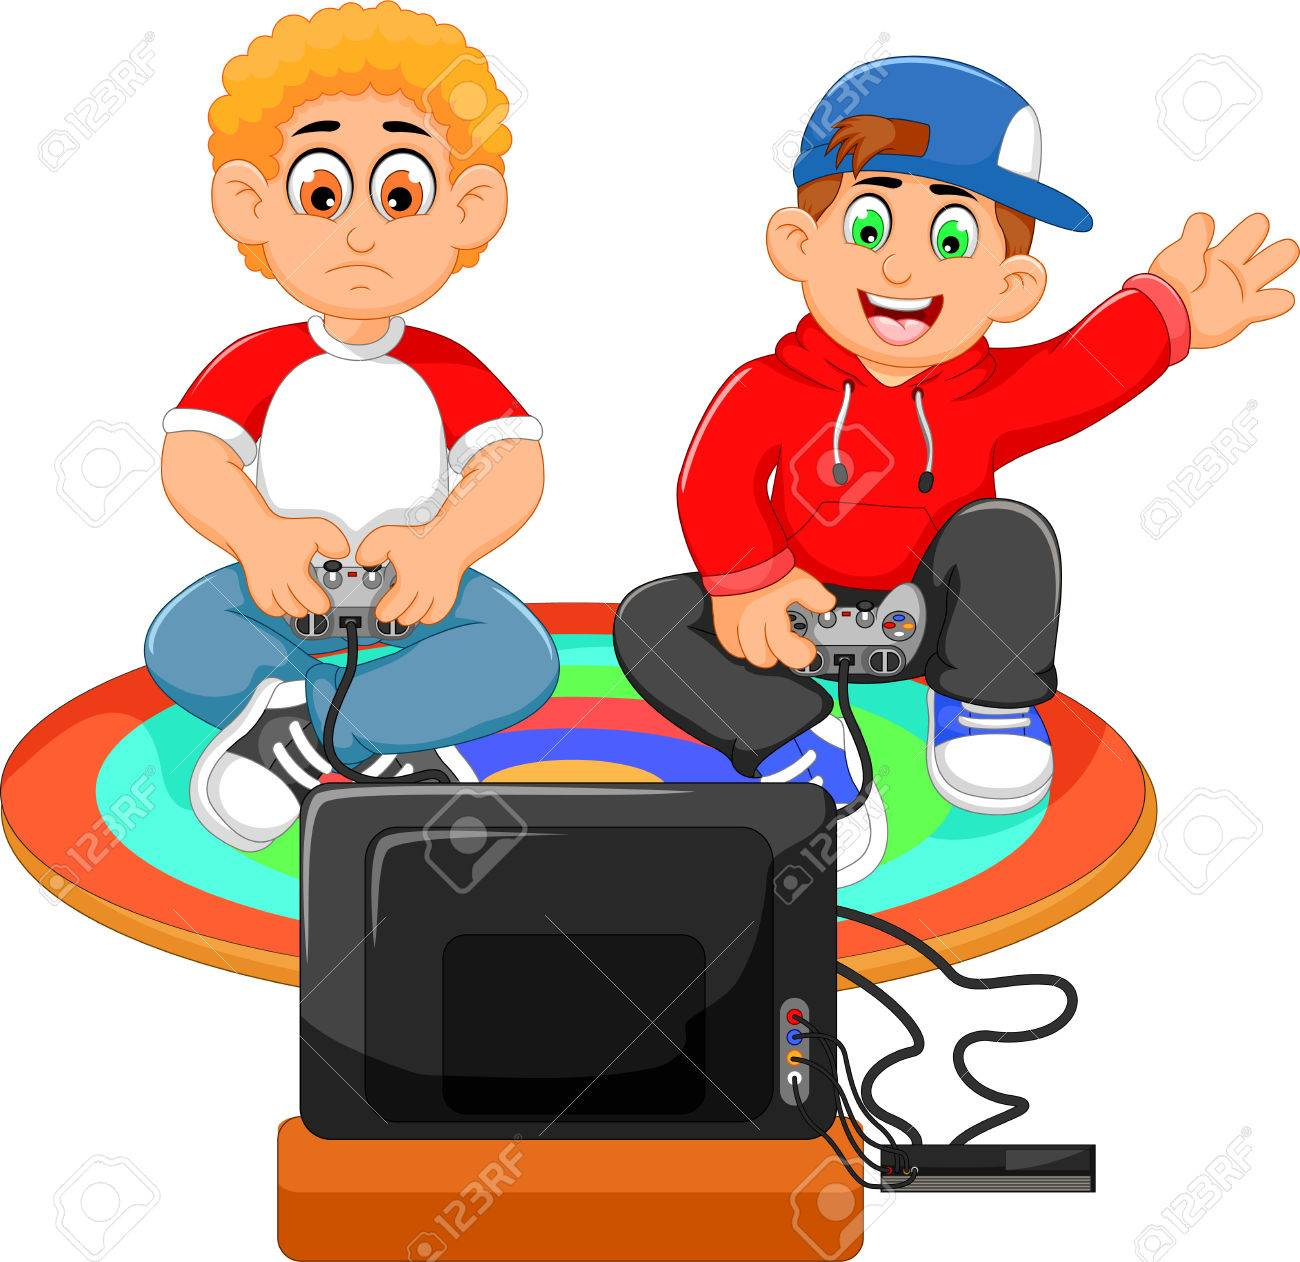 funny two boys playing playstation - 69878691